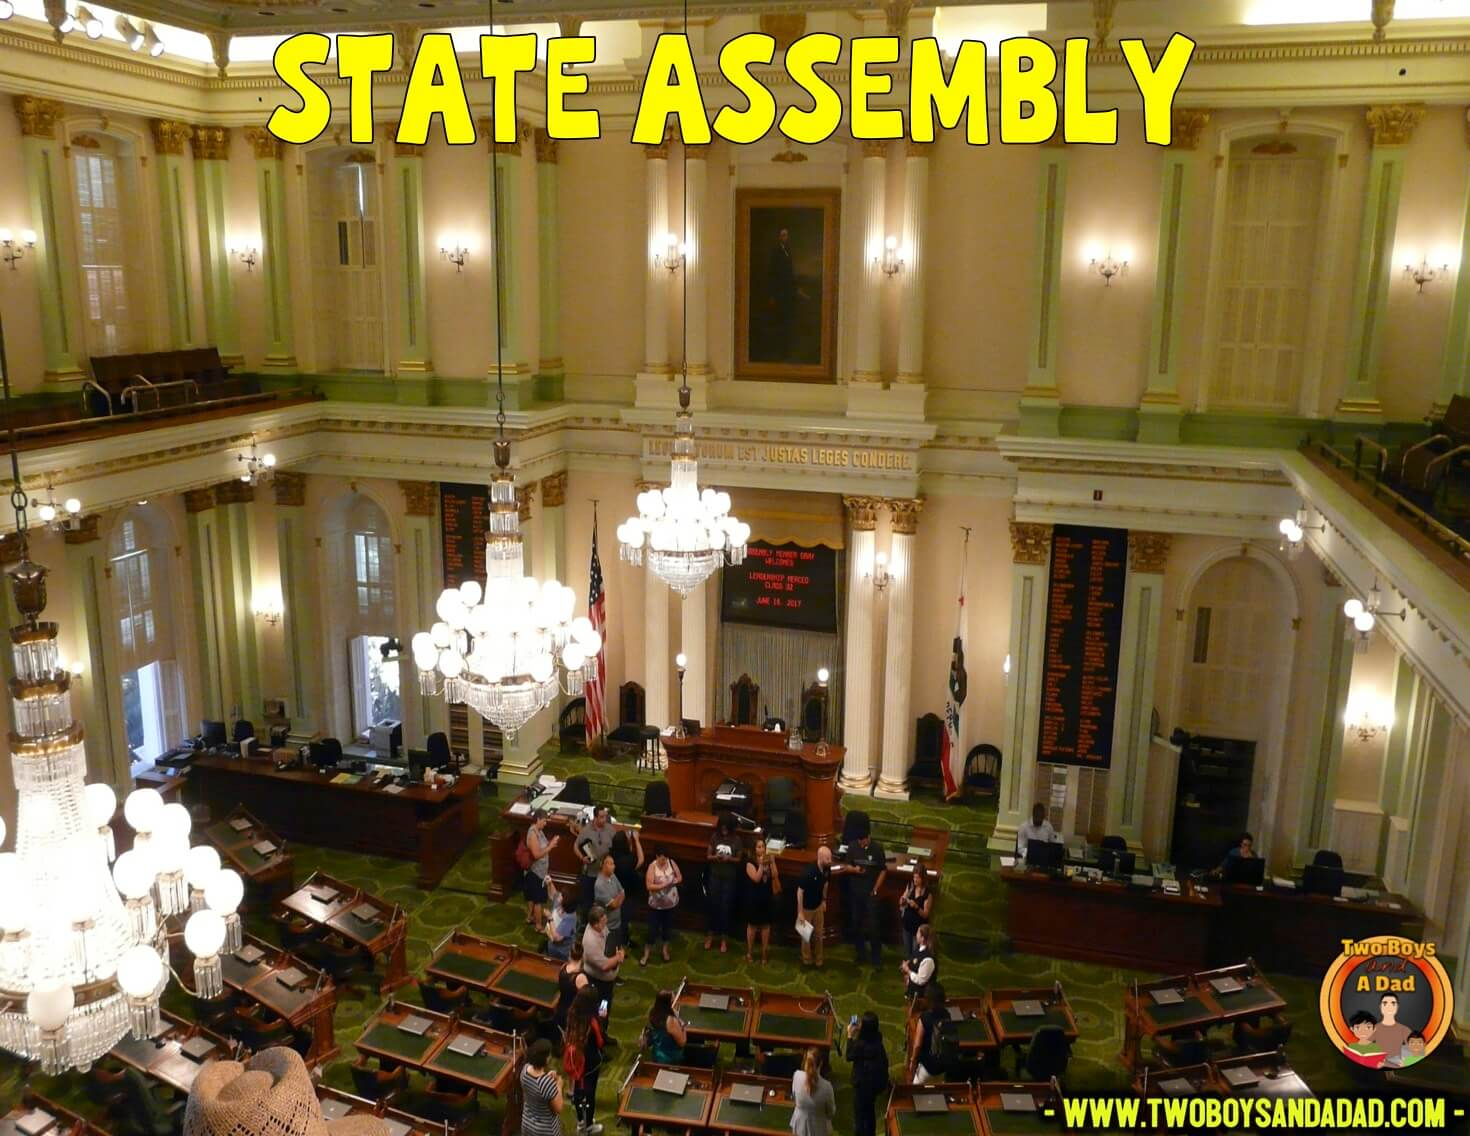 State Assembly Chamber